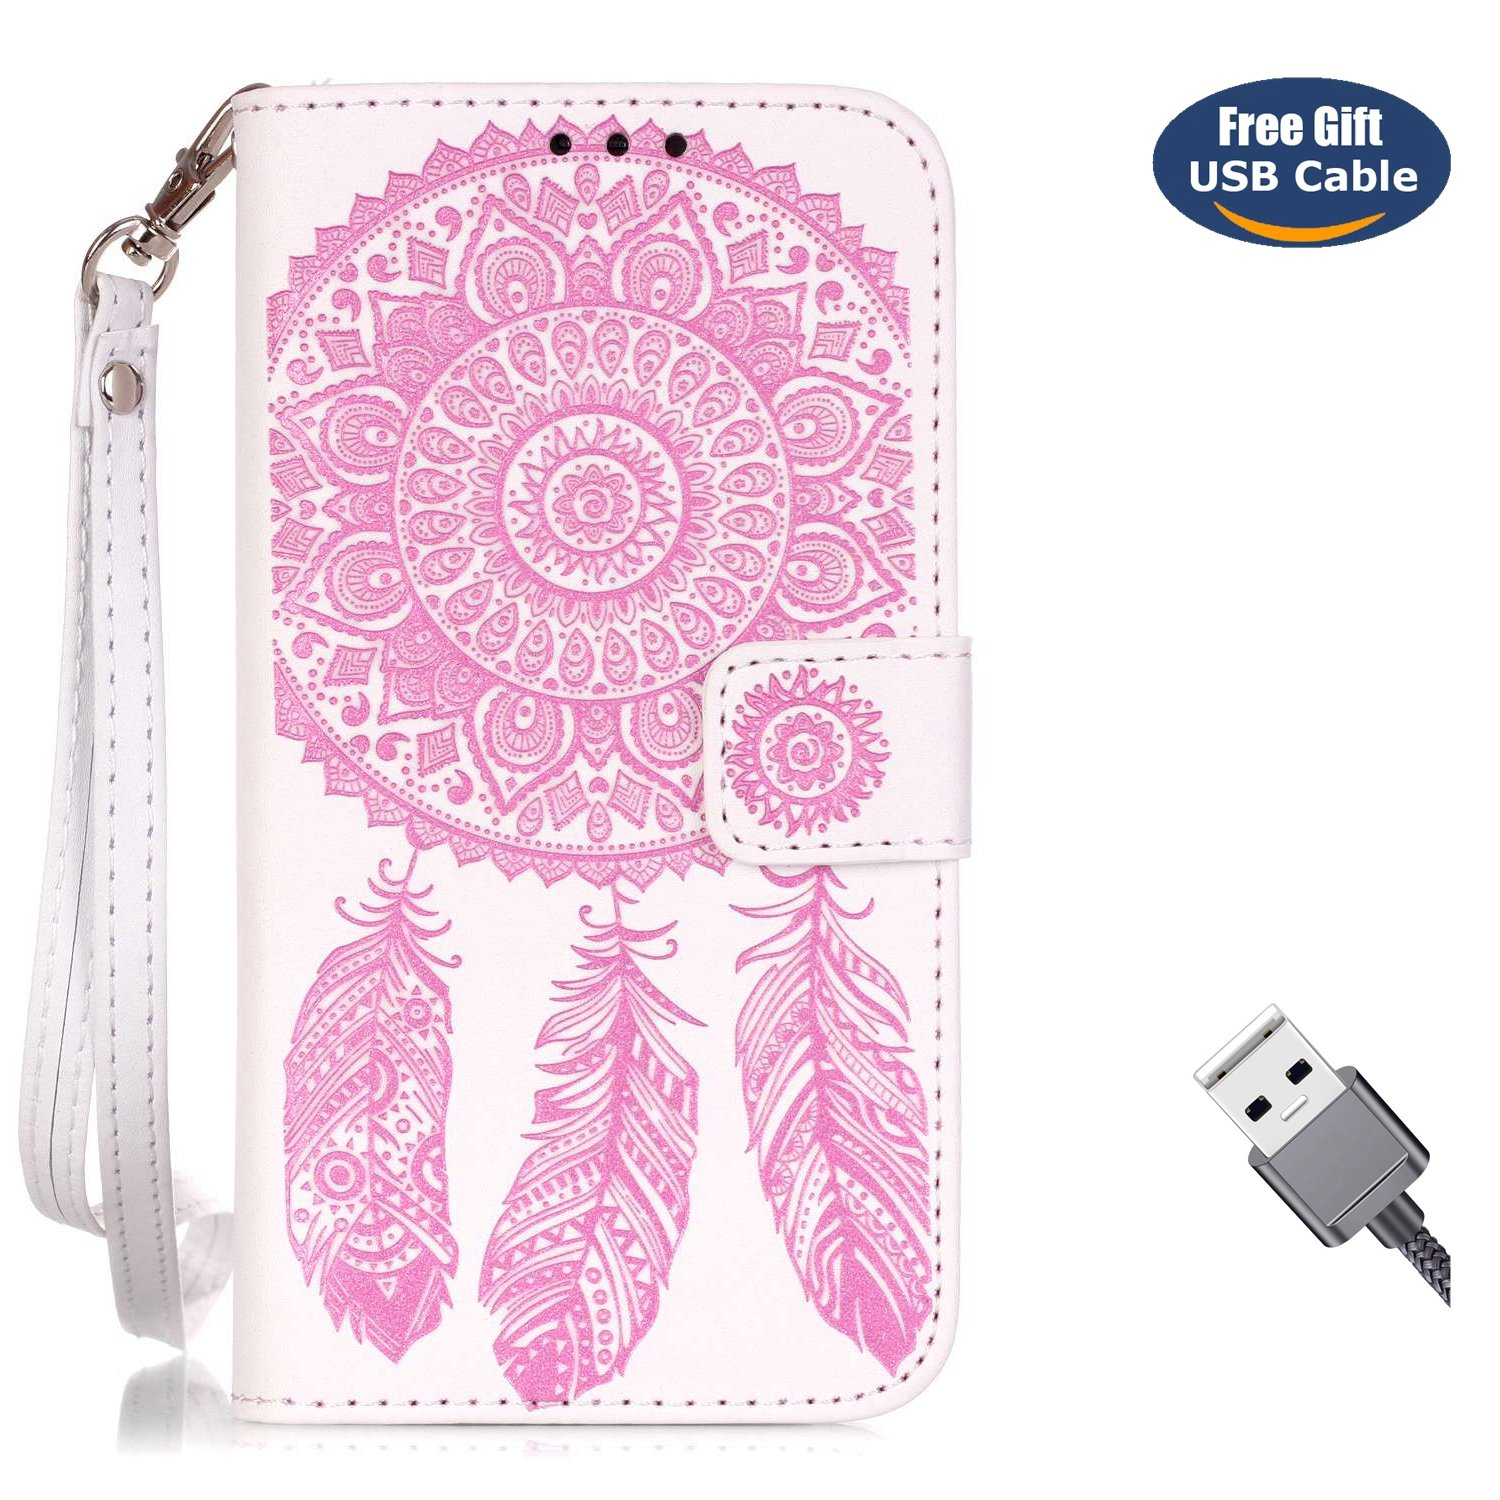 Aireratze Coque Galaxy S6,Housse S6, en Cuir PU Housse à Rabat Portefeuille Coque Mandala Dream Catcher Fleur Étui de Bumper Folio à Clapet pour Samsung Galaxy S6 (Marron)(+ Câble USB) hua2018830f60032